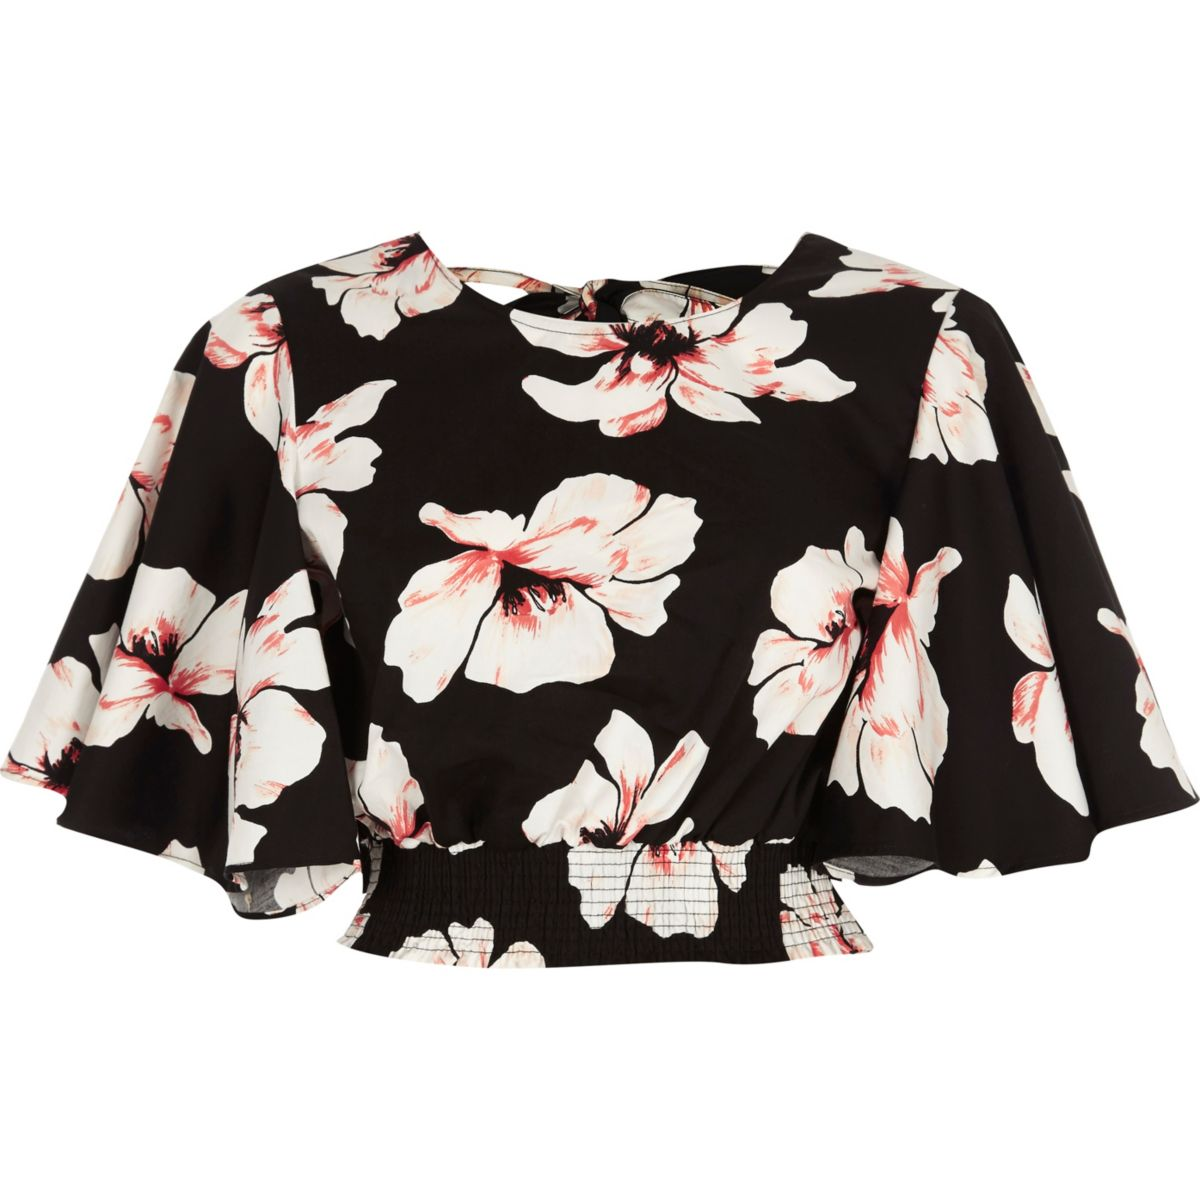 Black floral frill sleeve crop top